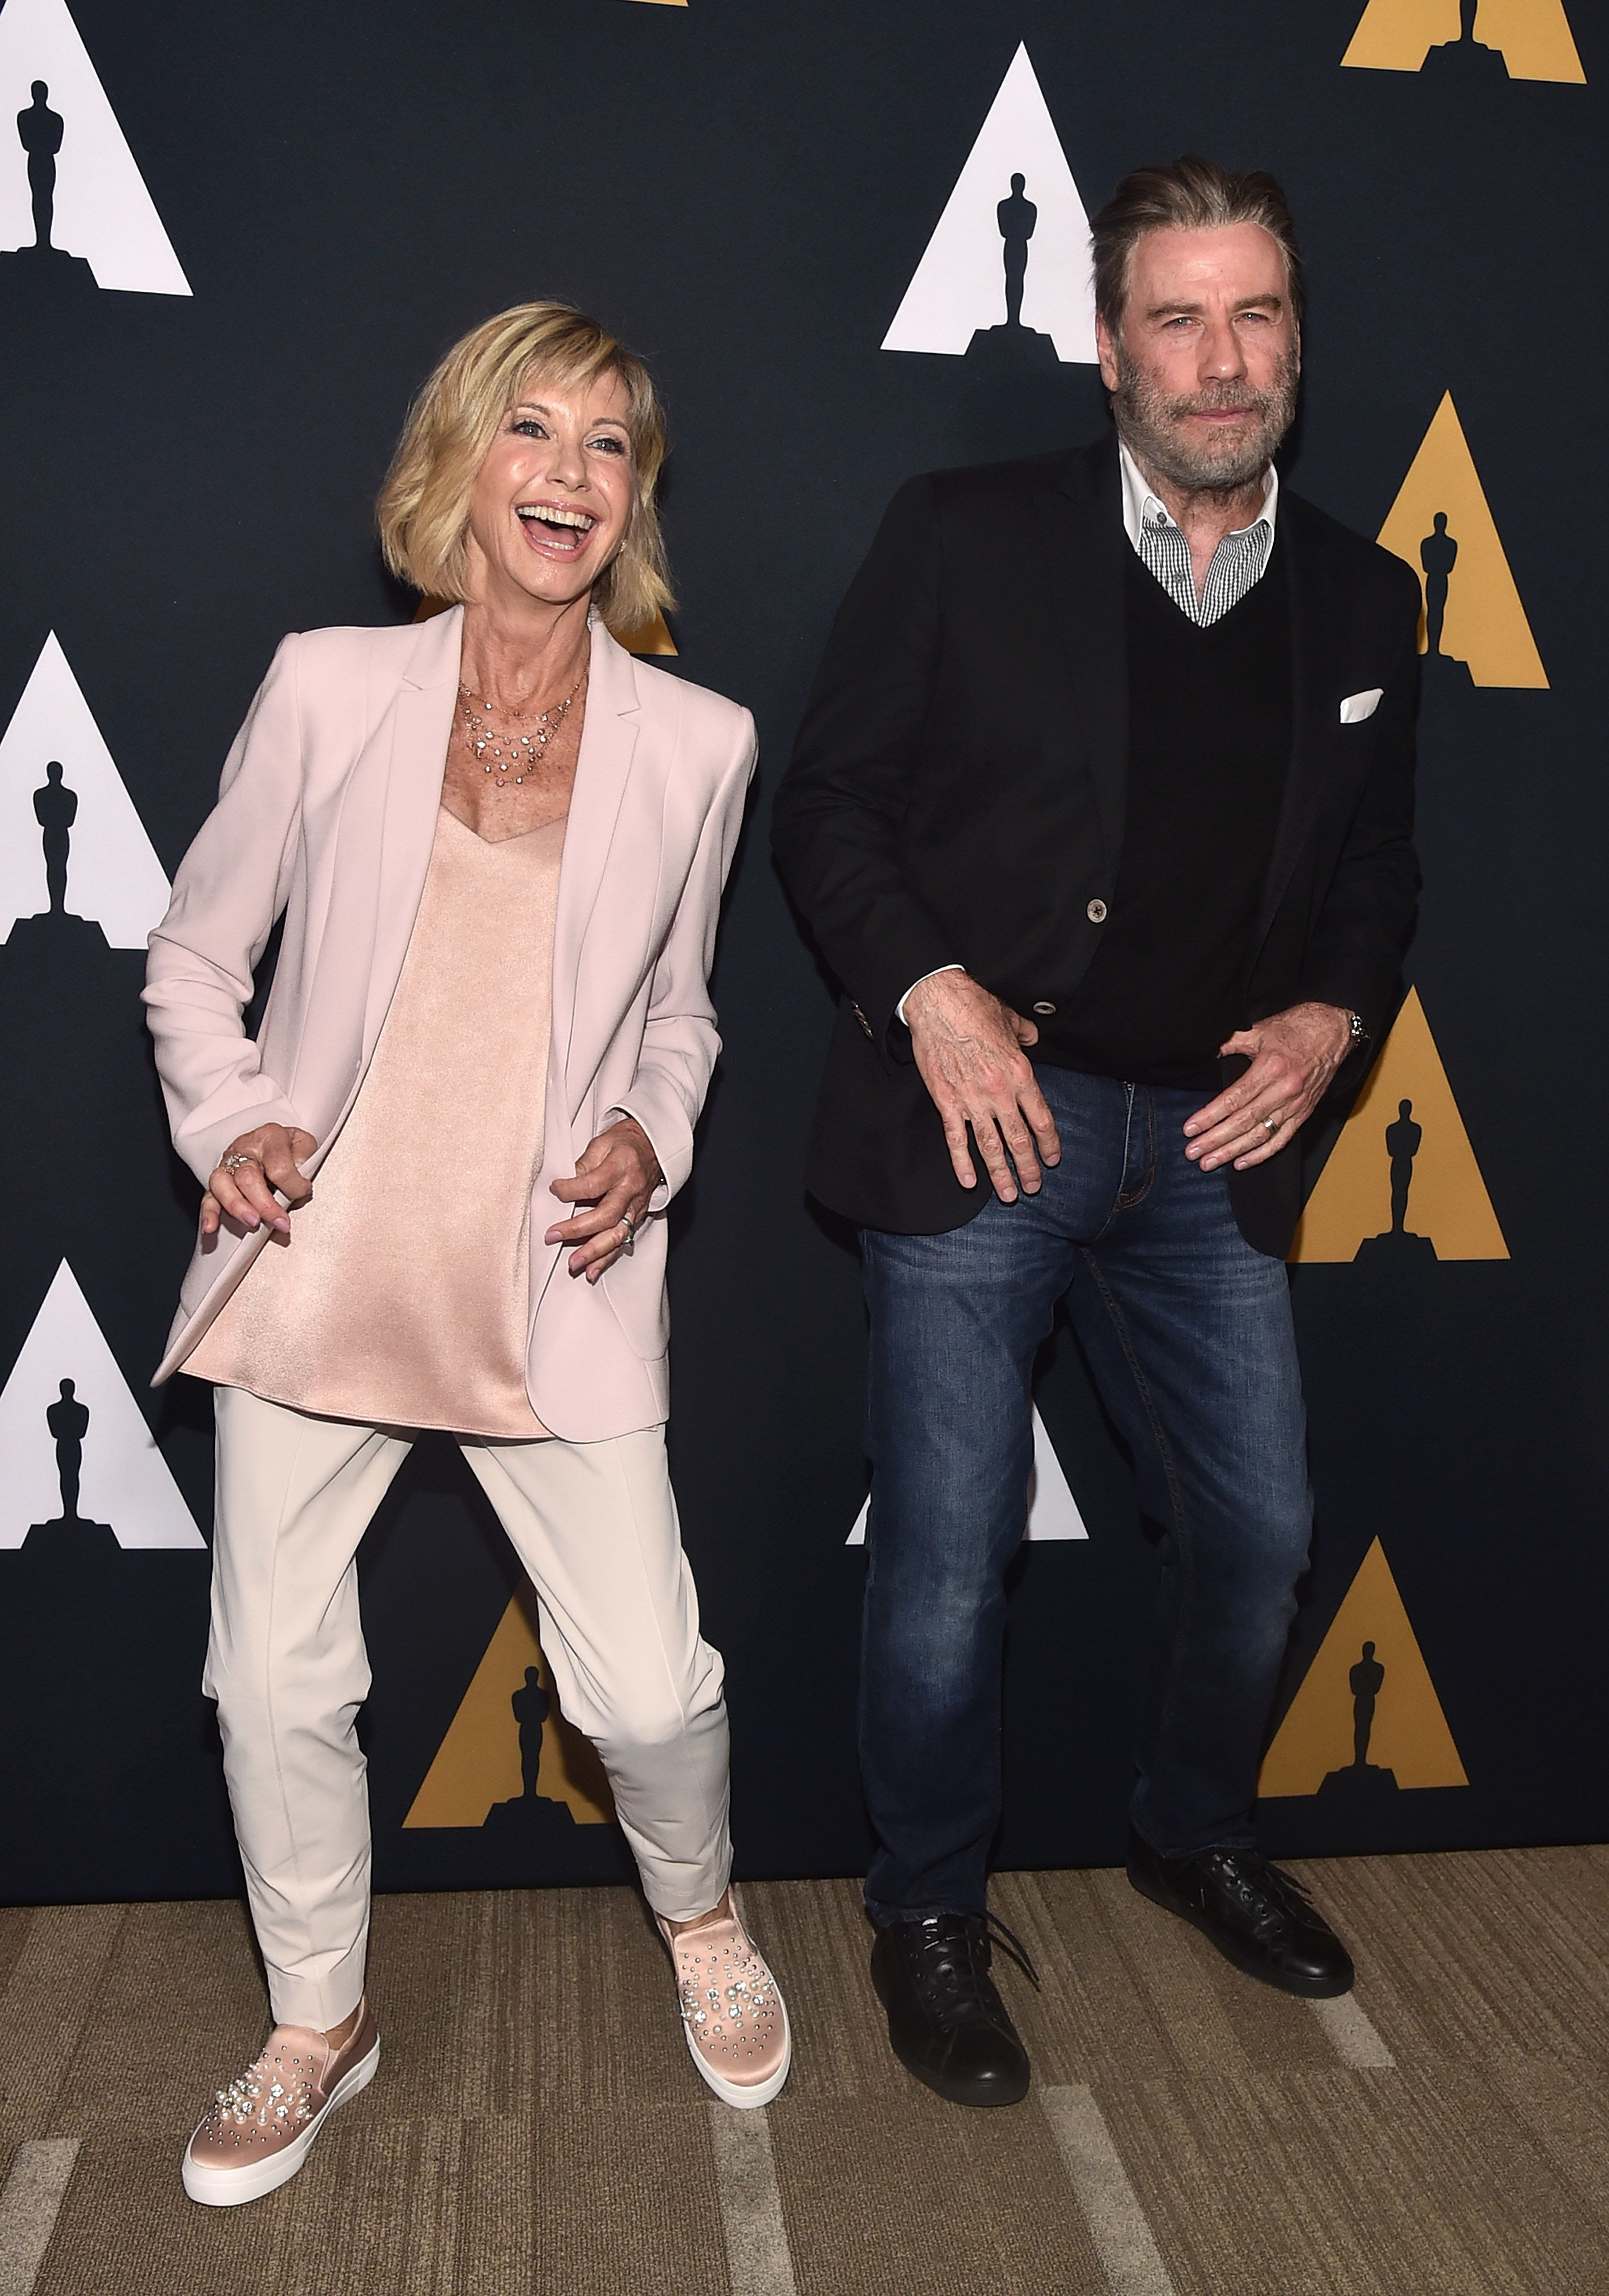 Olivia Newton-John and John Travolta attend the Academy Presents 'Grease' (1978) 40th Anniversary.